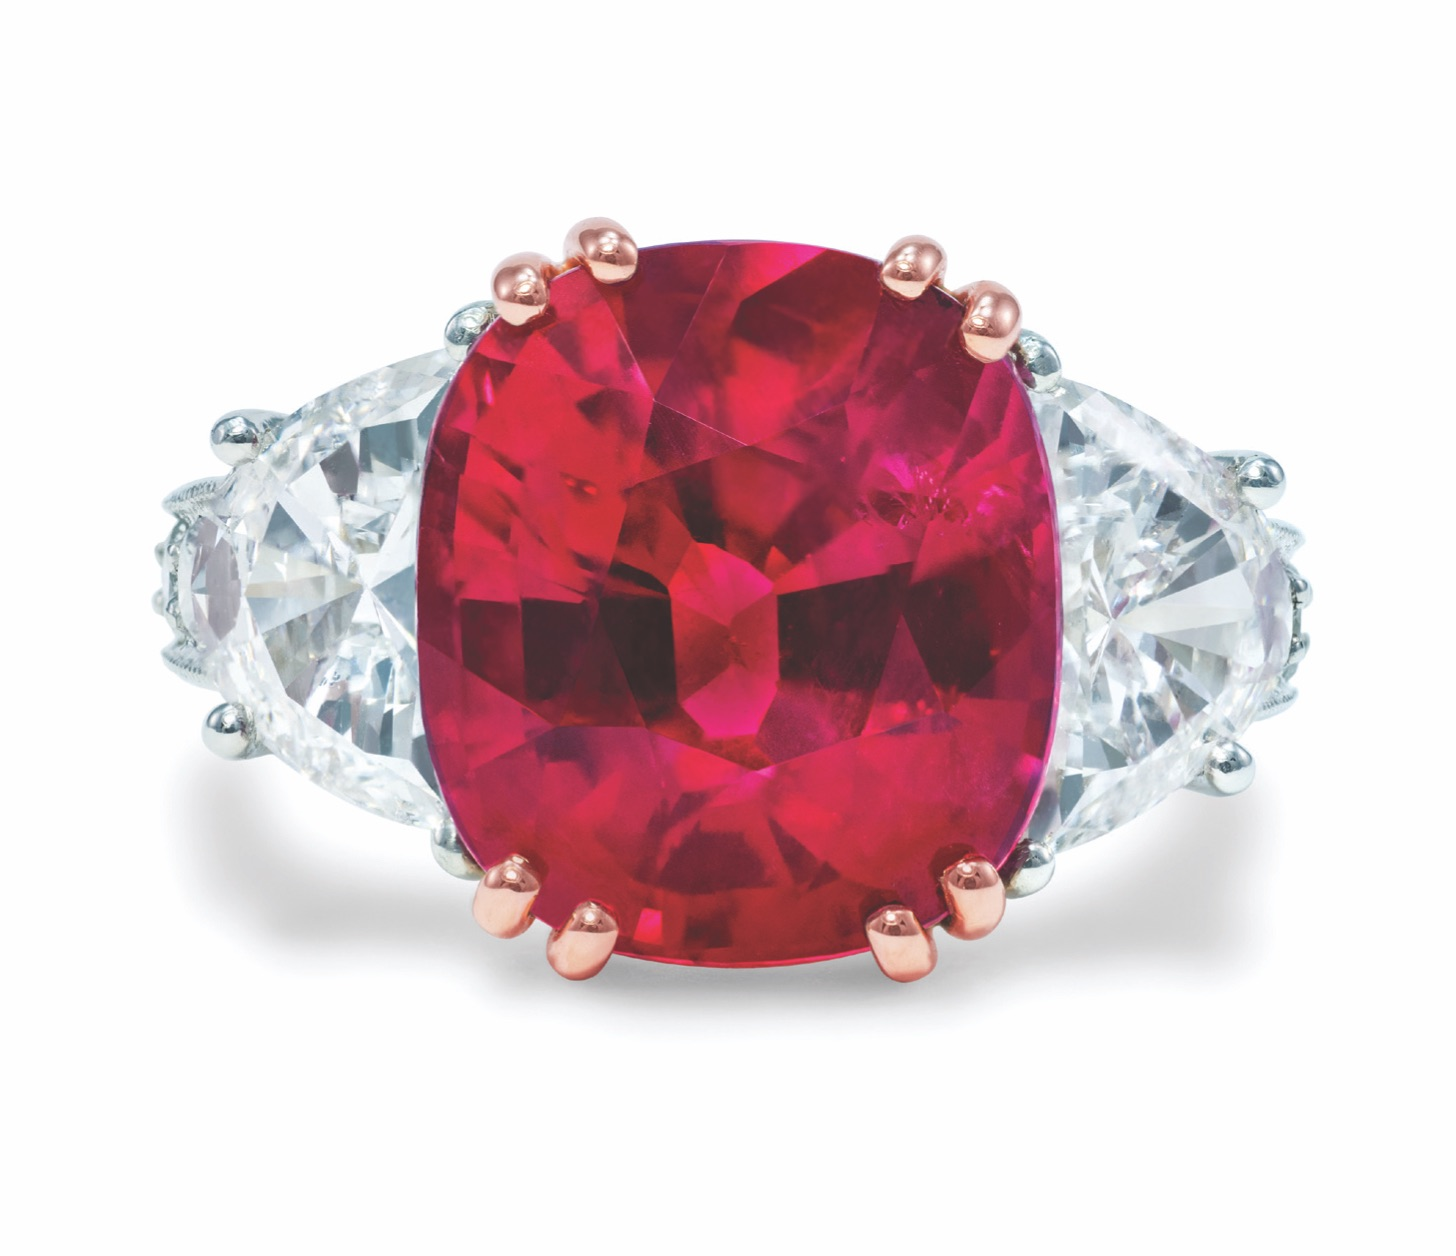 John Buechner ruby and diamond ring | JCK On Your Market